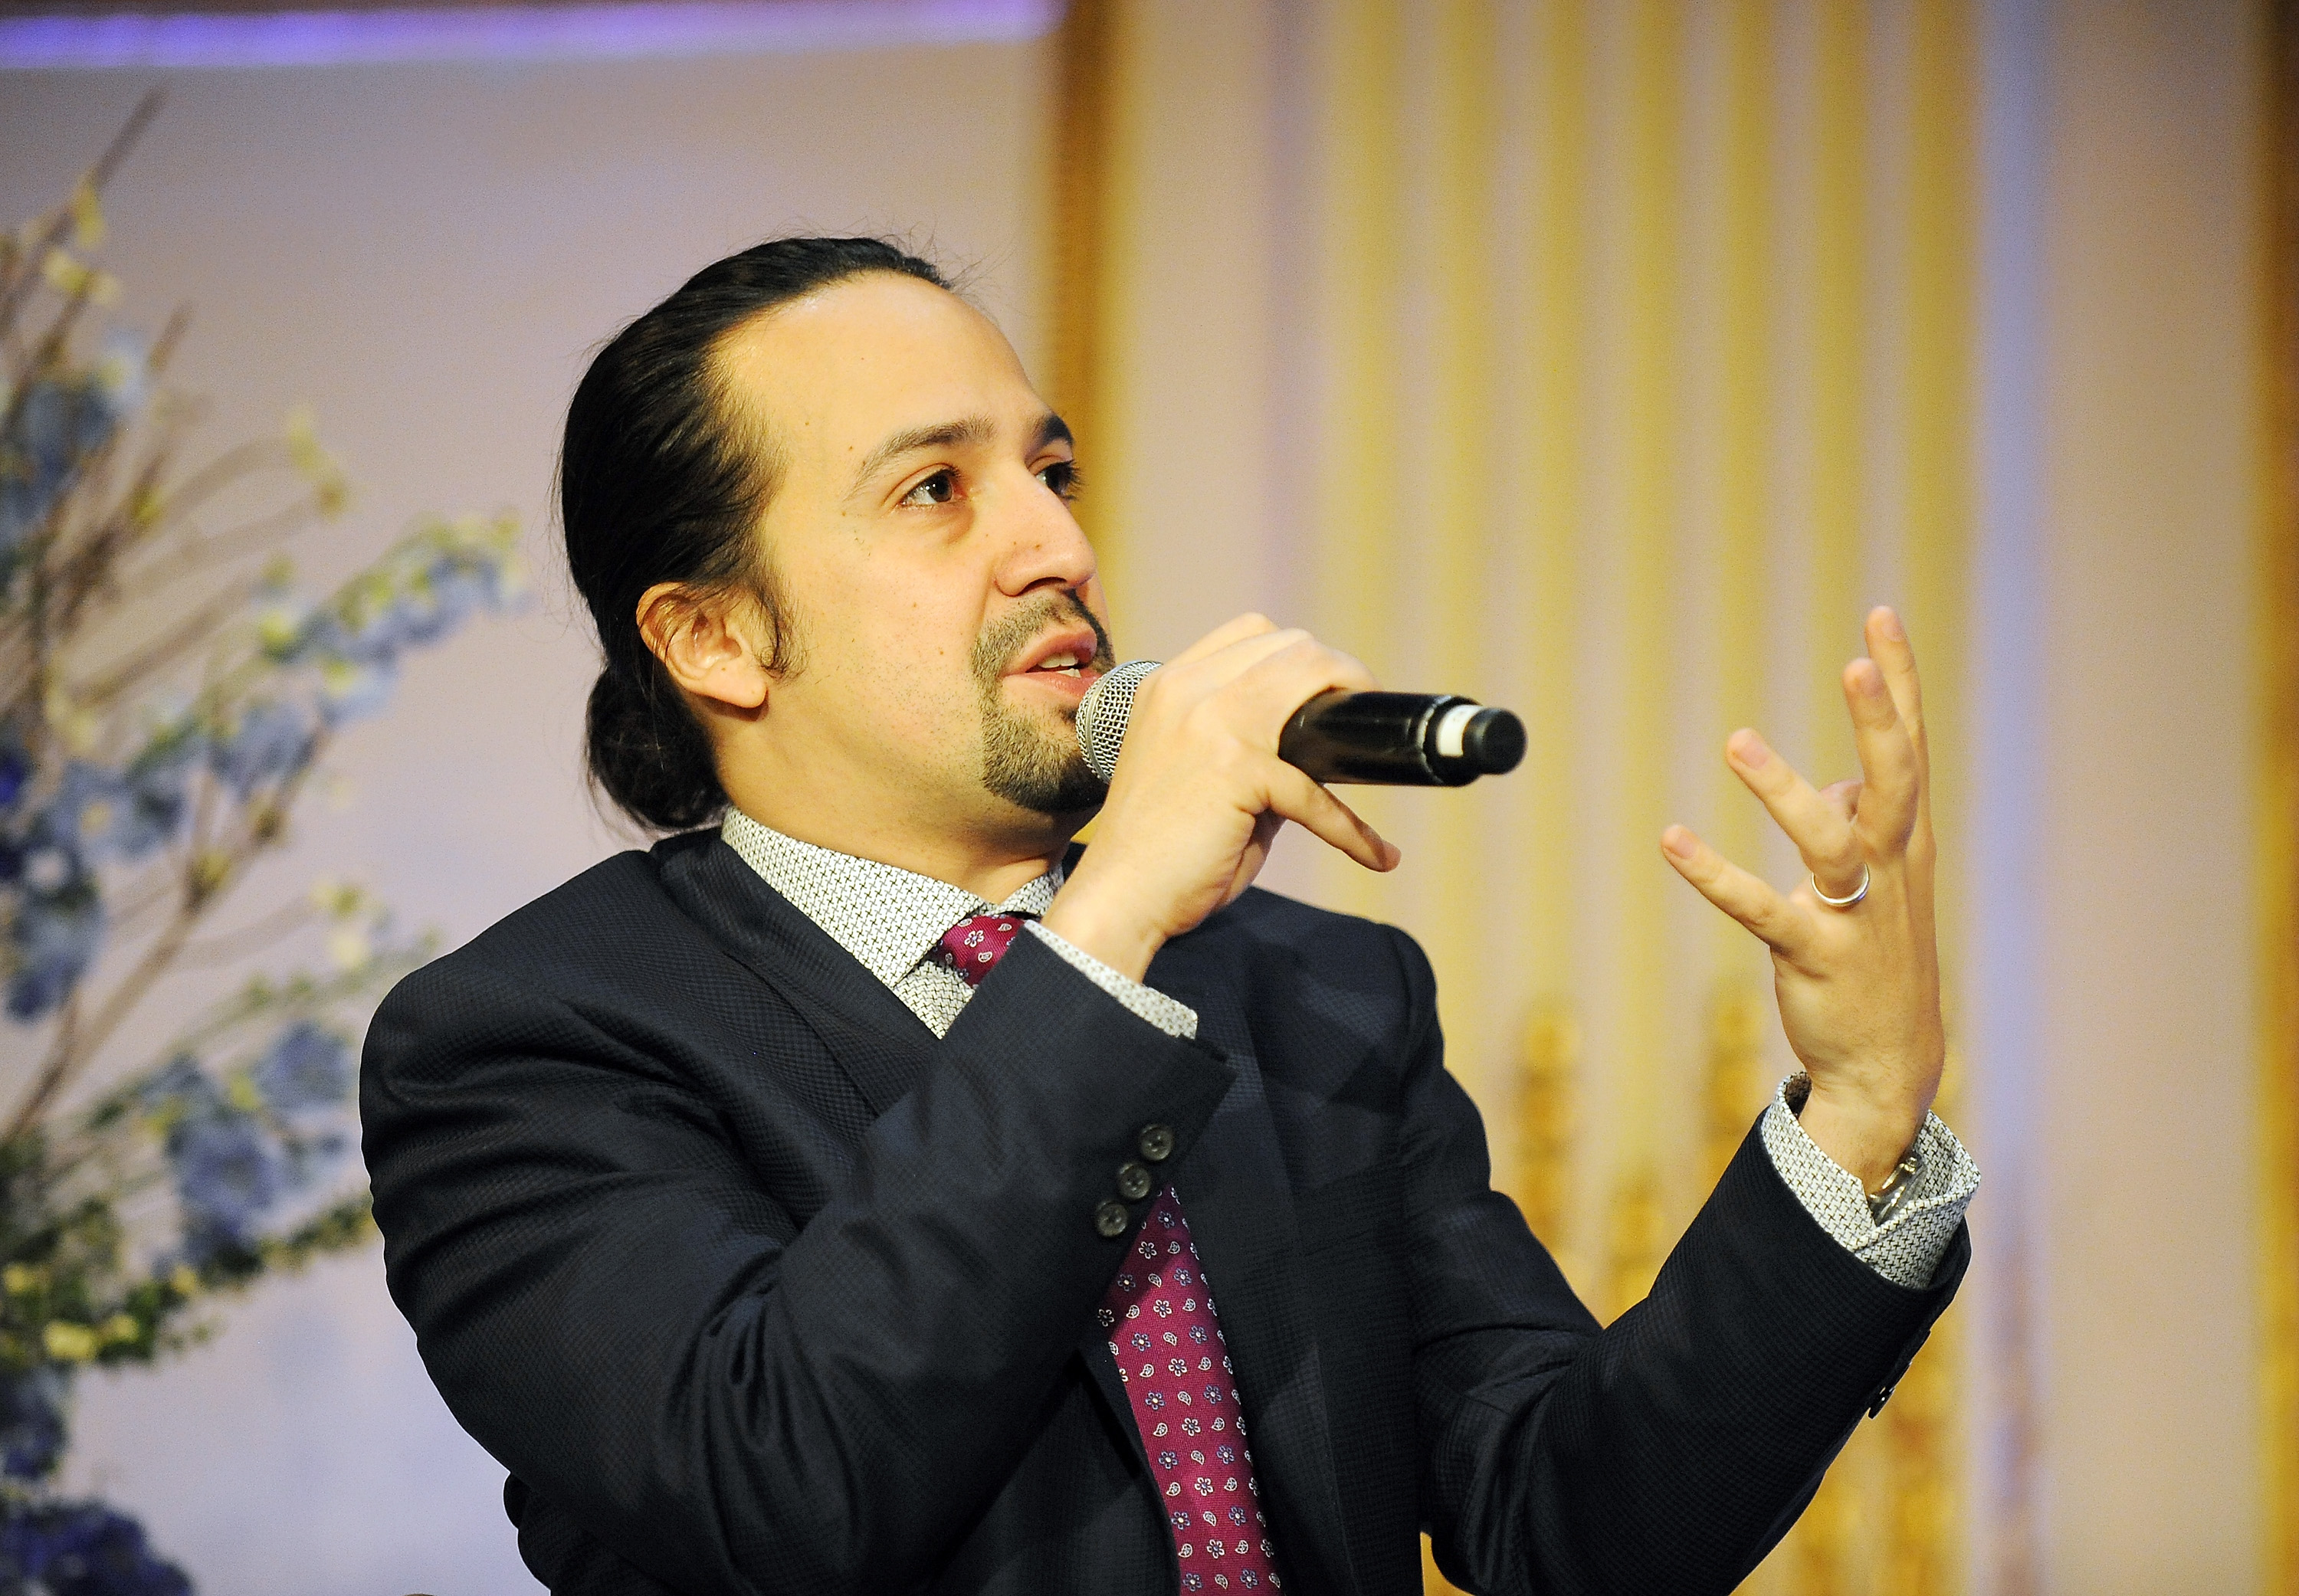 Creator of the hit Broadway play 'Hamiliton', Lin-Manuel Miranda attends the 2016 John Jay College Educating For Justice Gala at on May 23 in New York City.